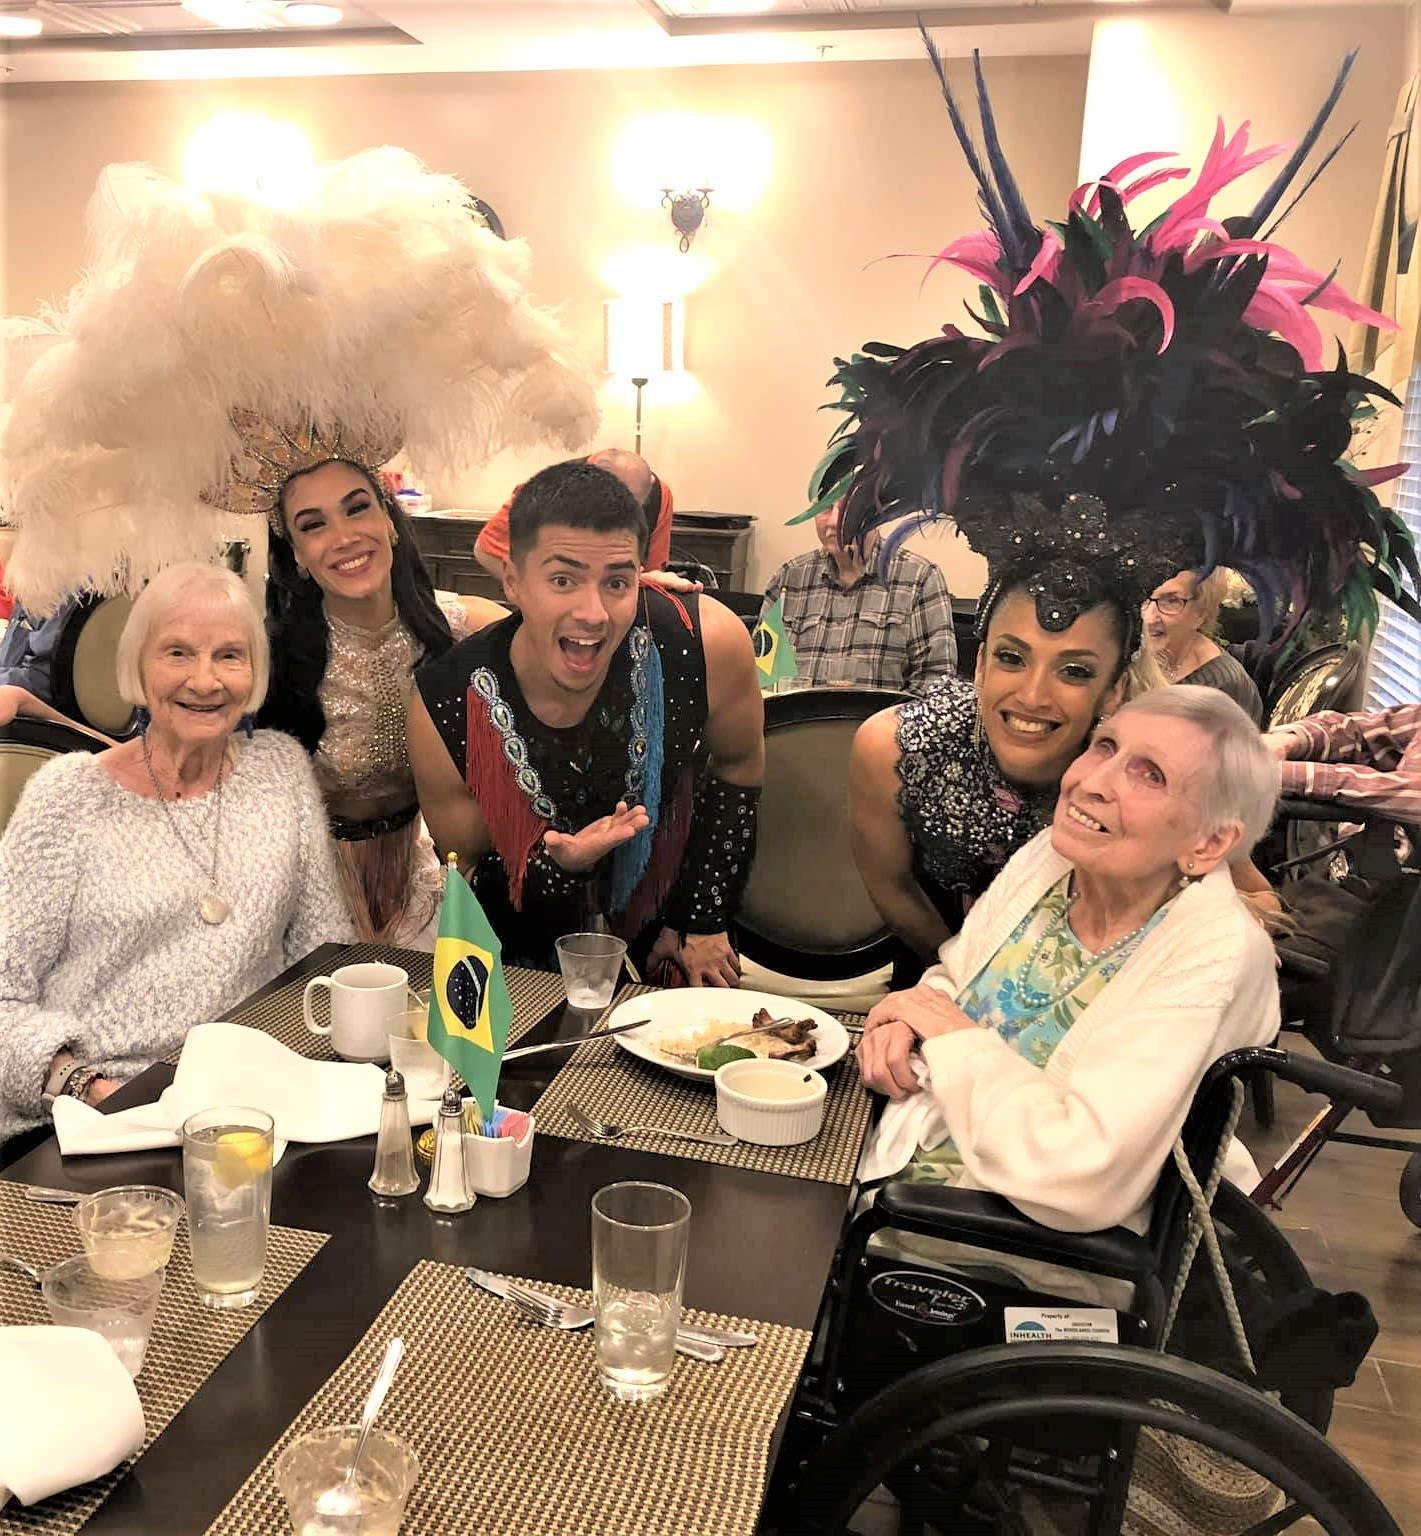 Brazilian Dancers at Inspired Living Ocoee in Ocoee, Florida.